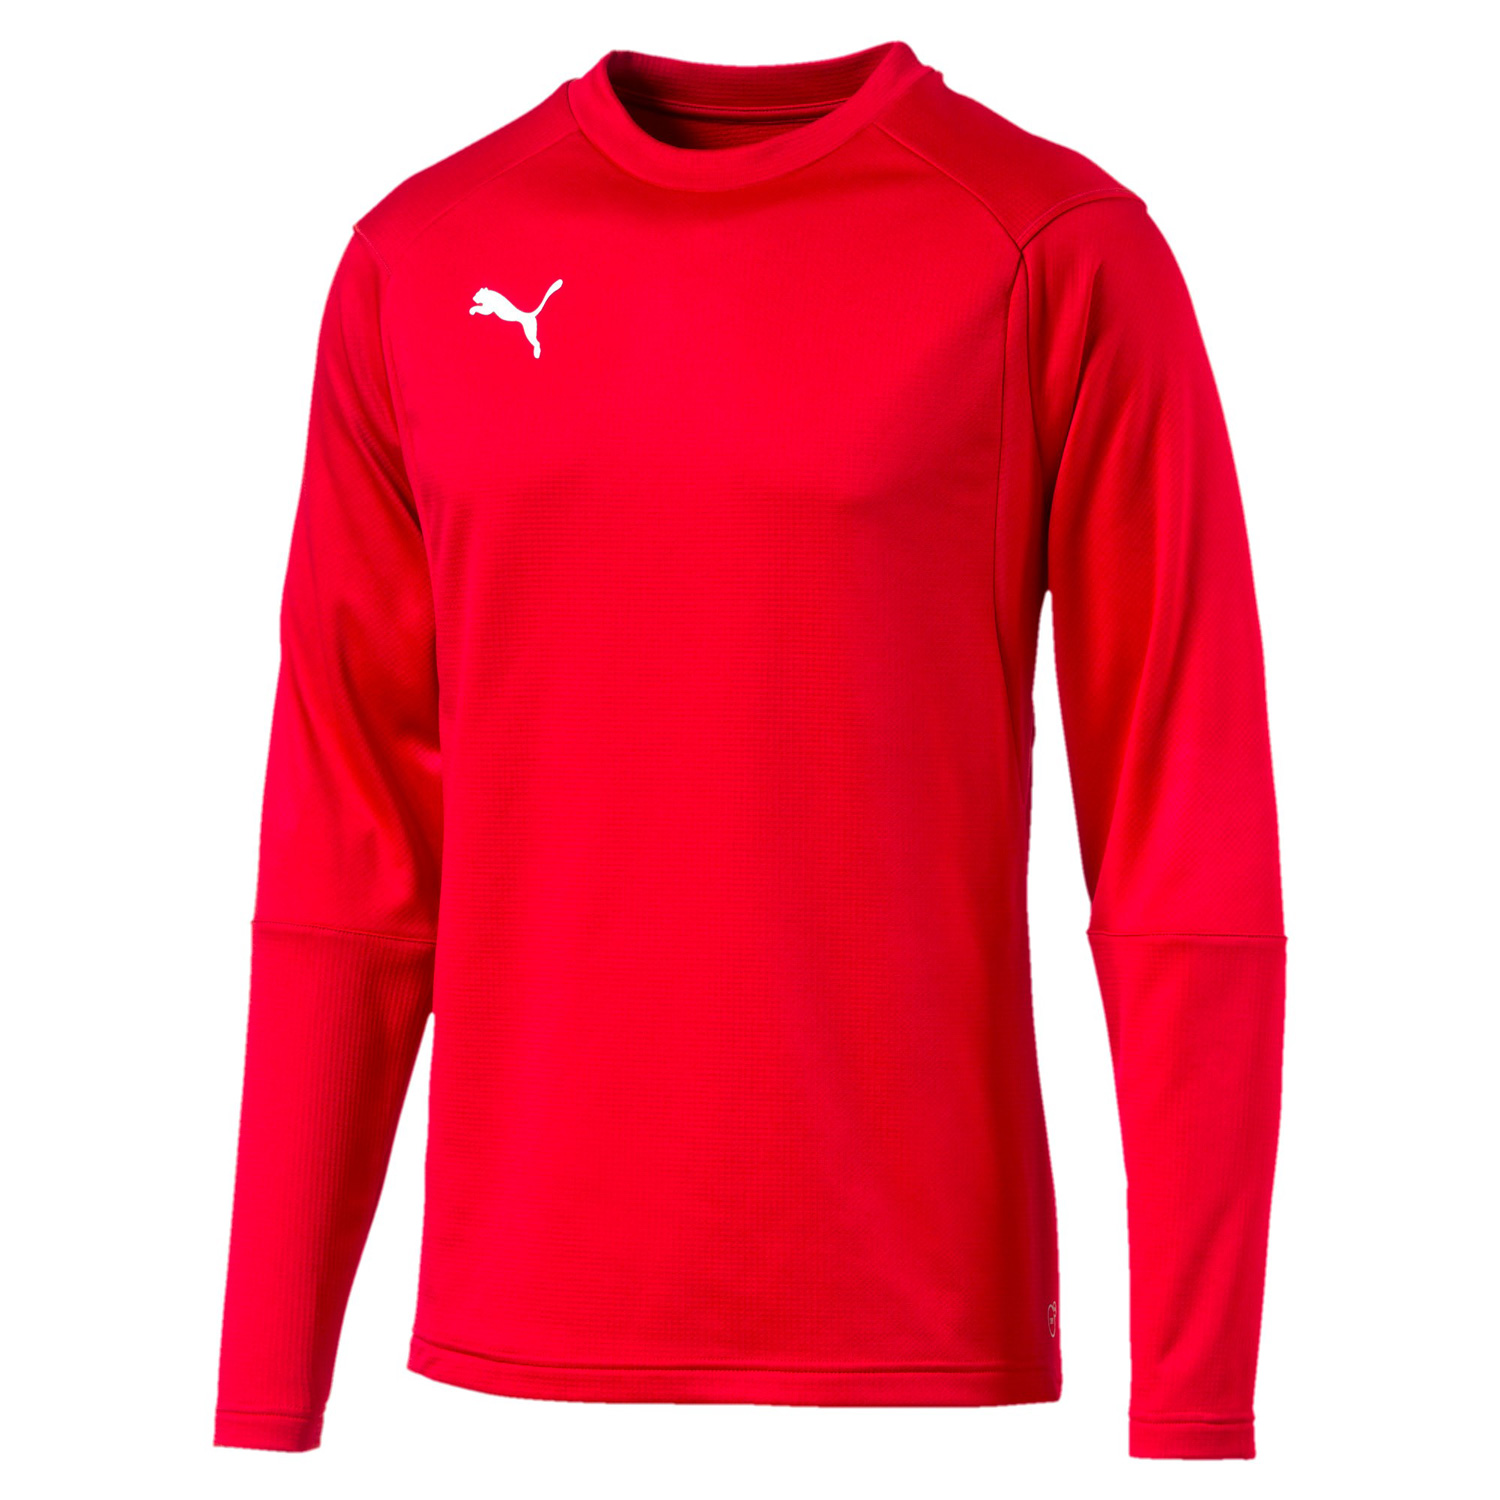 Puma Liga Herren Training Sweat Shirt 655669 01 rot